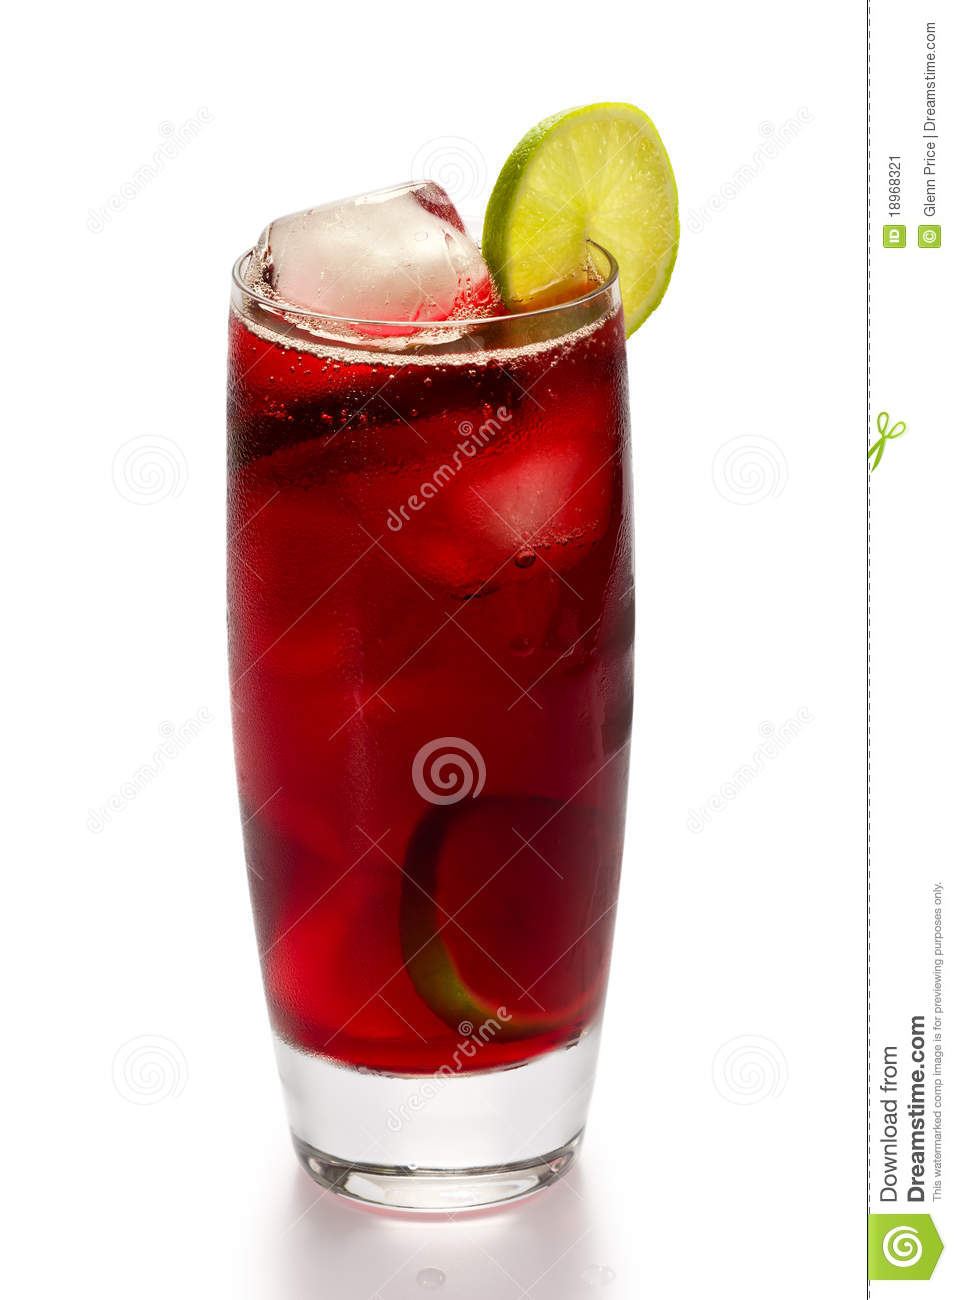 glass of iced hibiscus tea with slices of lime on white background.